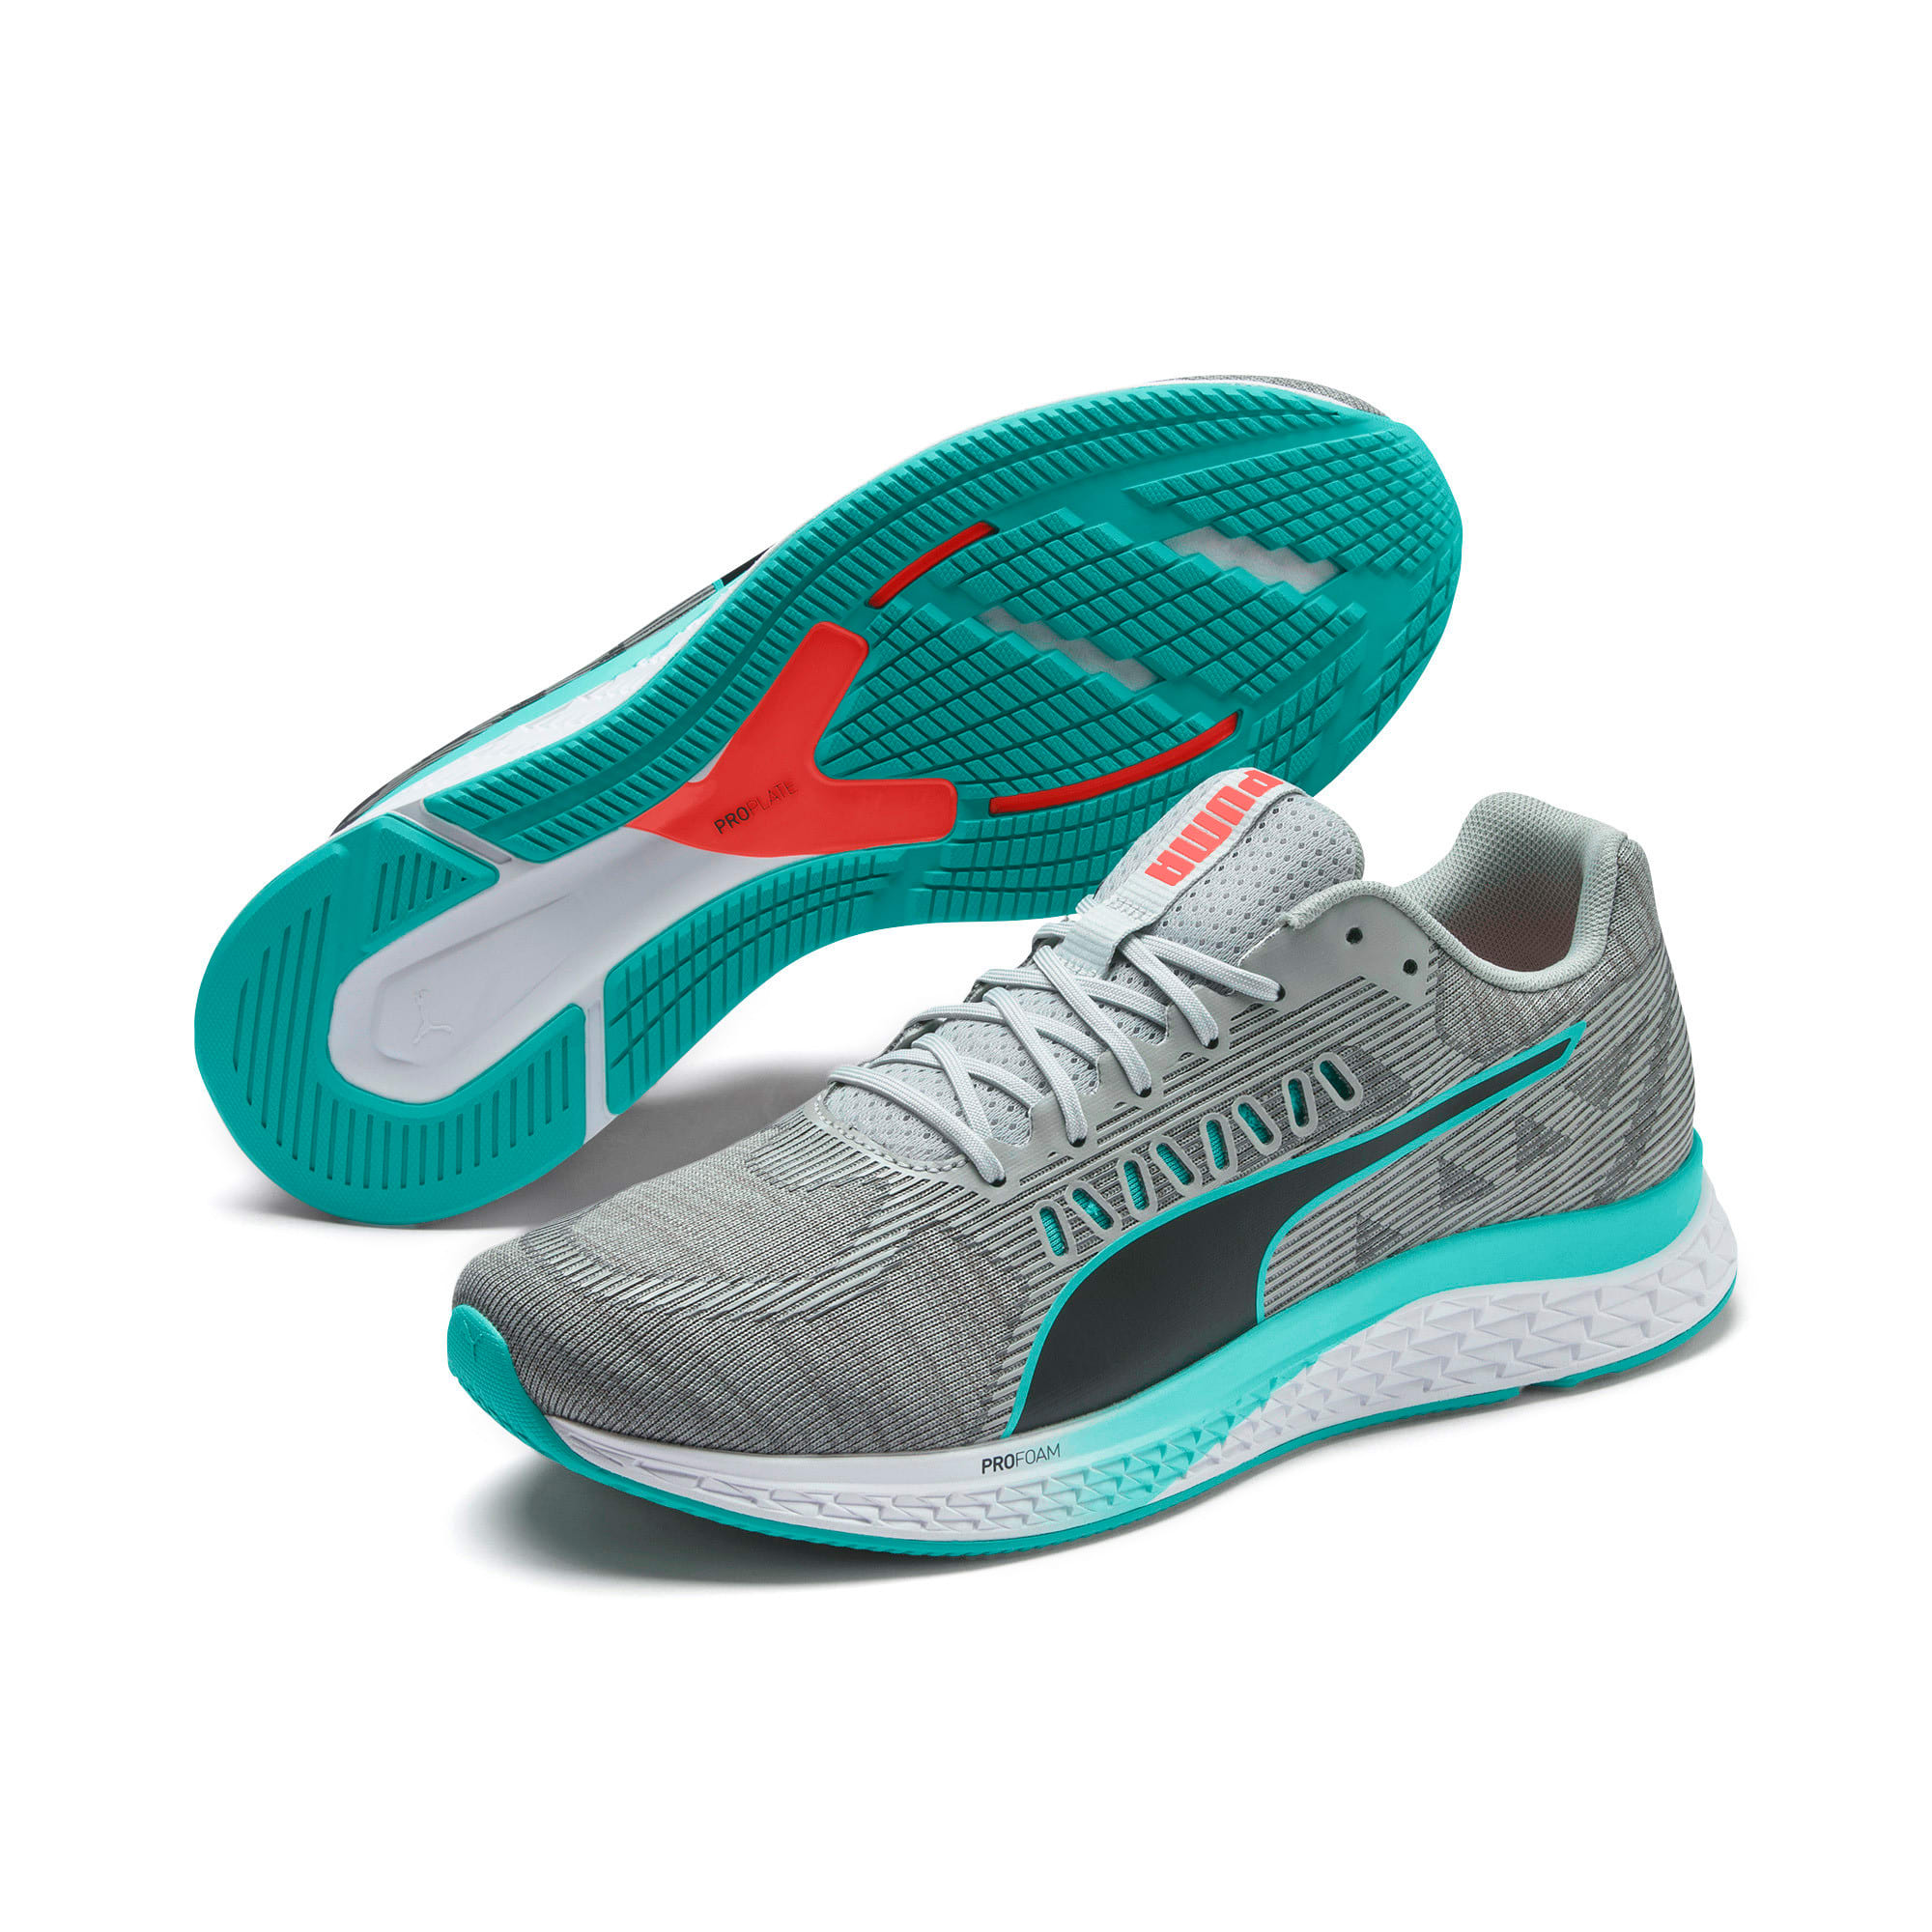 Thumbnail 3 of SPEED SUTAMINA Running Shoes, High Rise-Nrgy Red-Blue Turq, medium